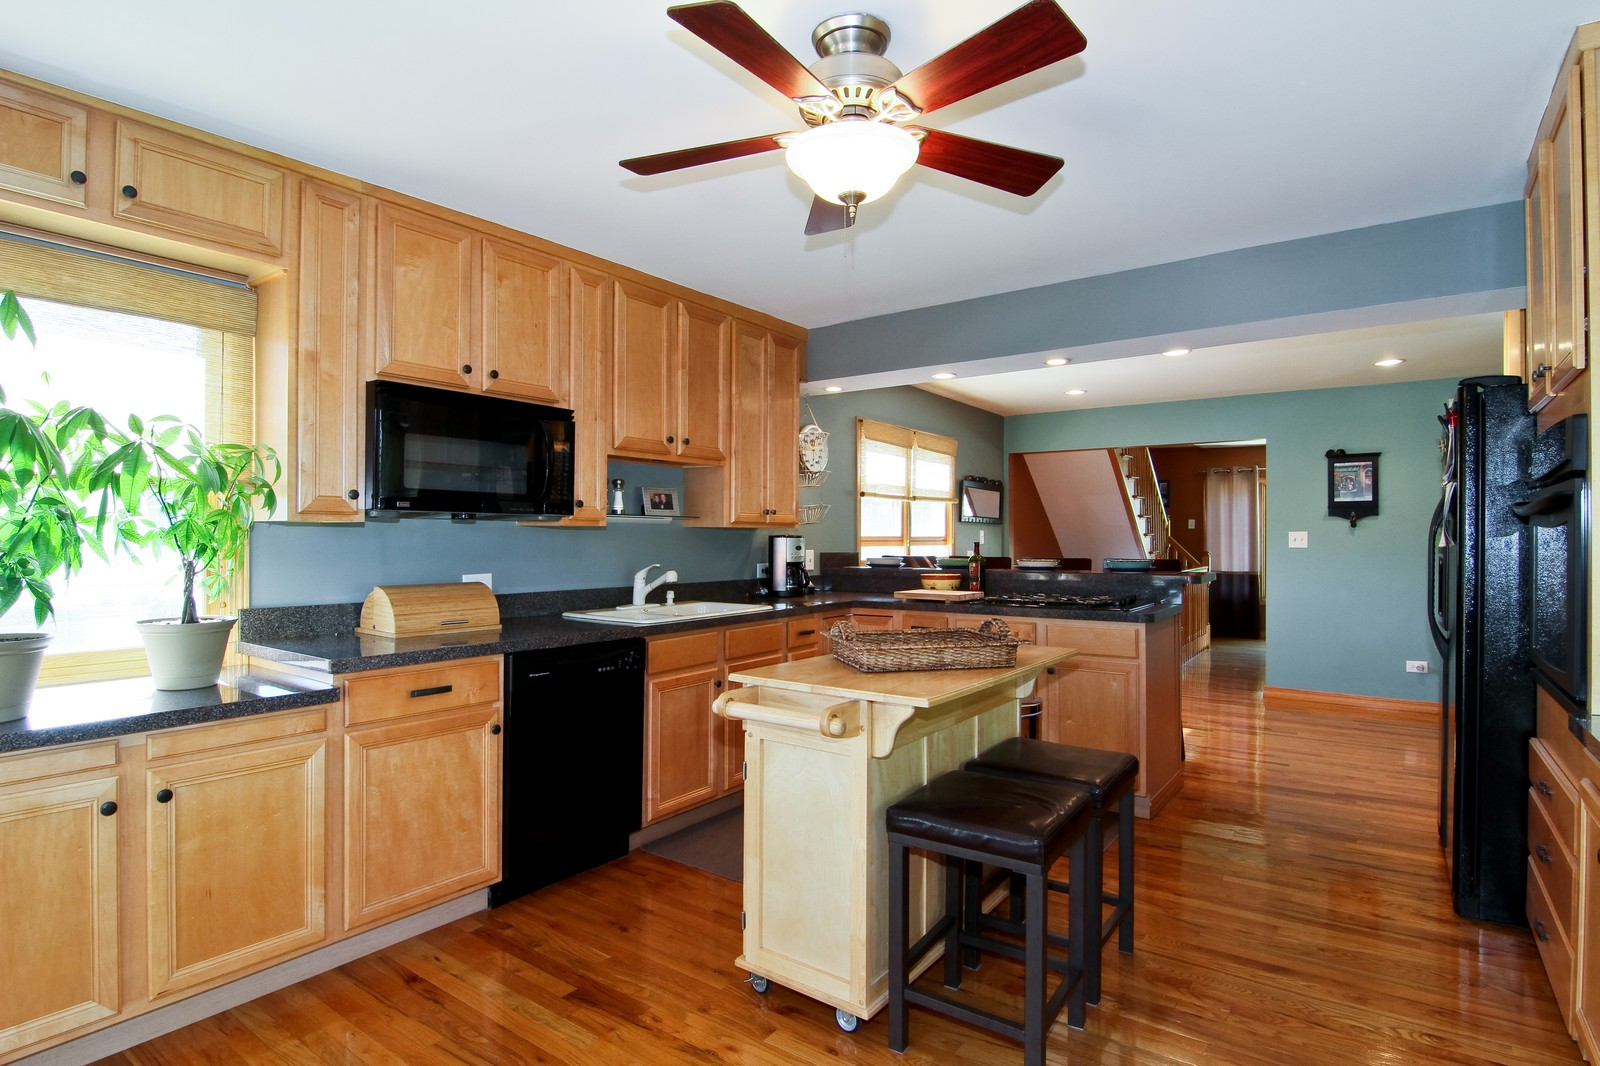 Real Estate Photography - 7760 W 82nd St, Bridgeview, IL, 60455 - Kitchen